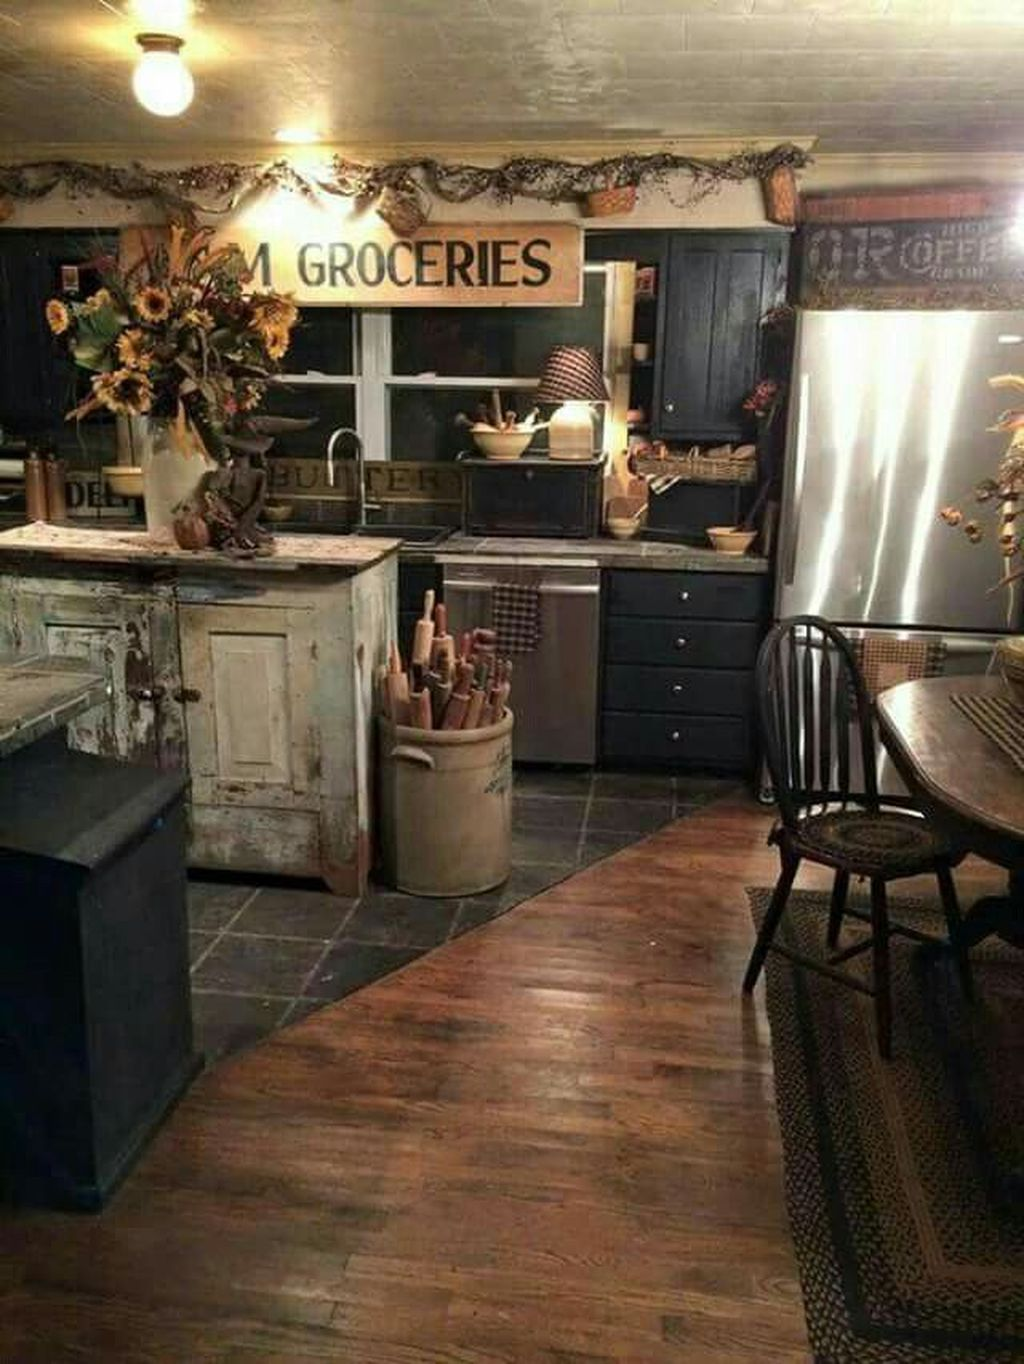 40 Inspiring Rustic Country Kitchen Ideas To Renew Your Ordinary Kitchen images